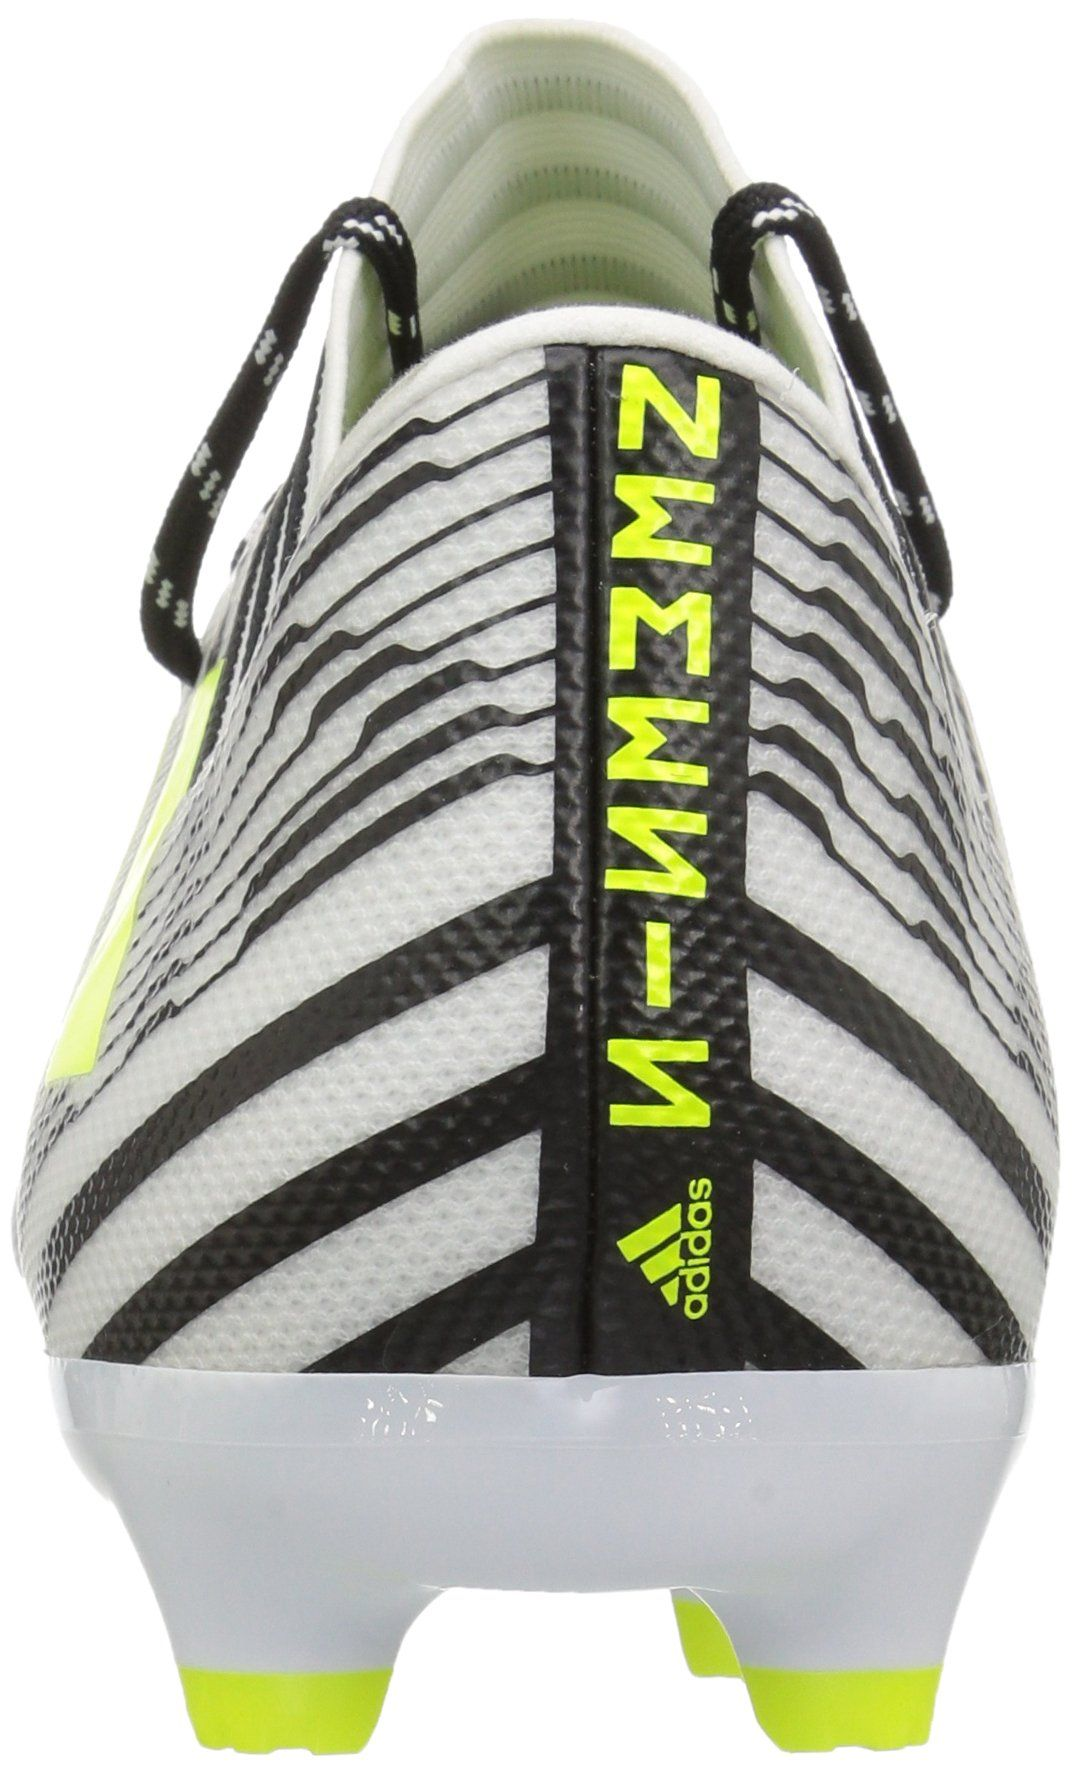 66a160d44 adidas Mens Nemeziz 17.3 Firm Ground Cleats Soccer Shoe White Solar  Yellow Black 6.5 M US -- Visit the image link more details. (This is an  affiliate link) ...